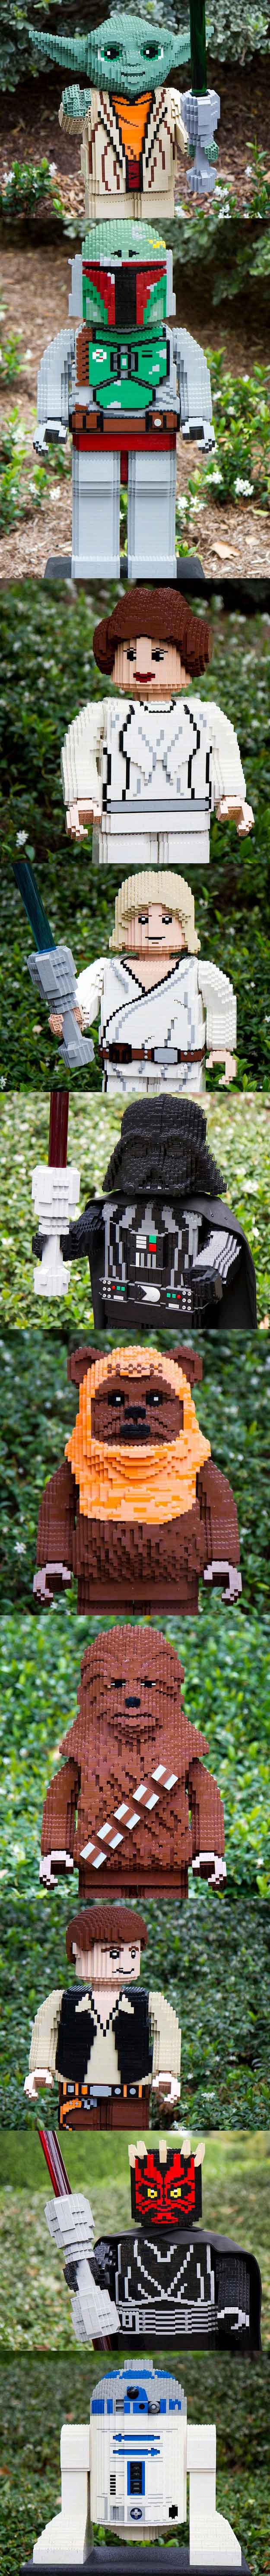 These giant star wars characters are made out of Legos! | Awesome DIY Lego Star Wars Ideas and Inspiration | https://diyprojects.com/11-diy-lego-star-wars-ideas/